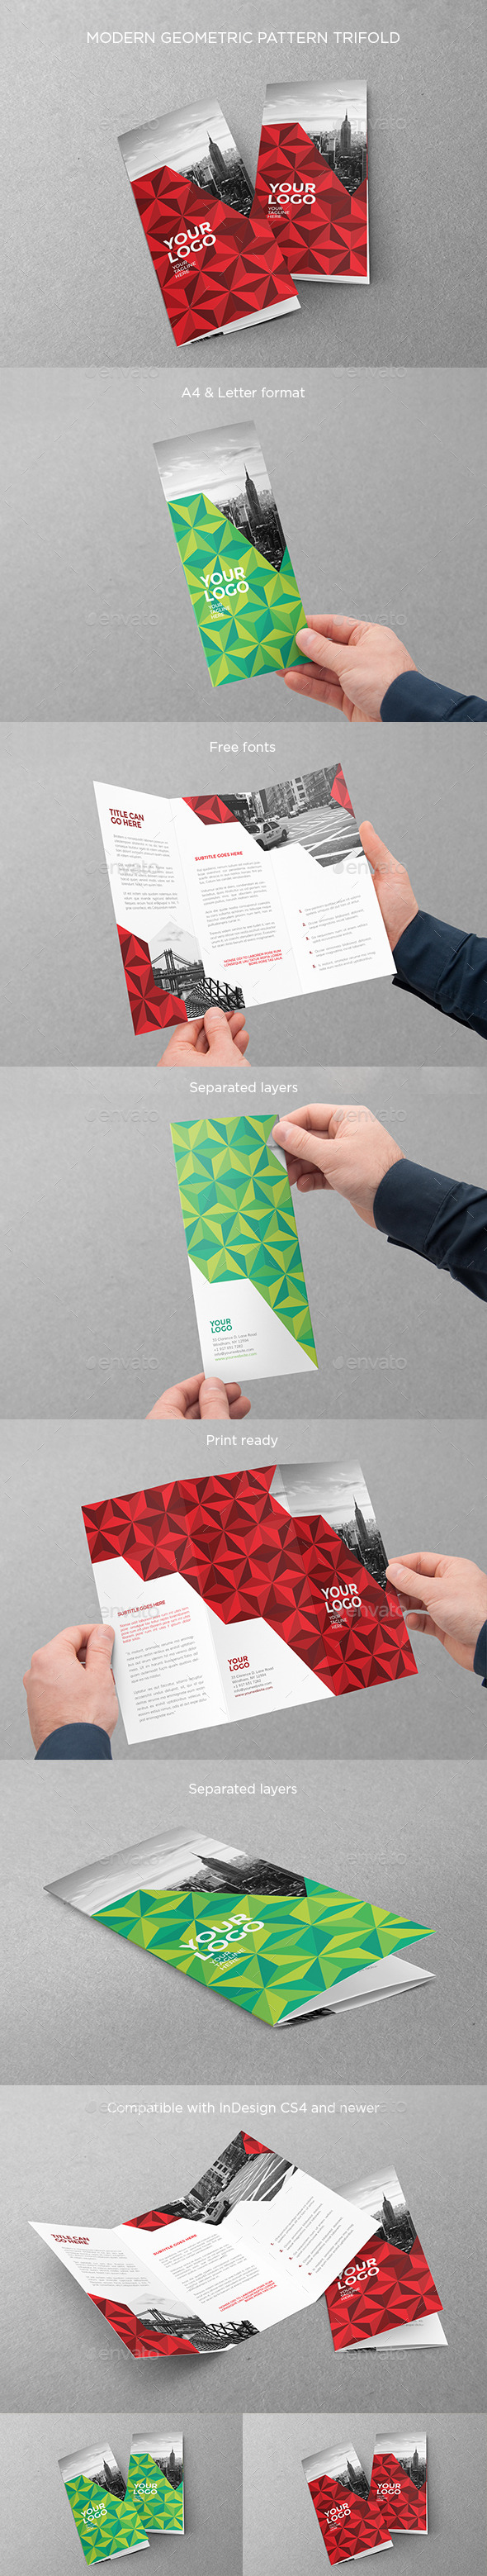 Modern Geometric Pattern Trifold - Brochures Print Templates